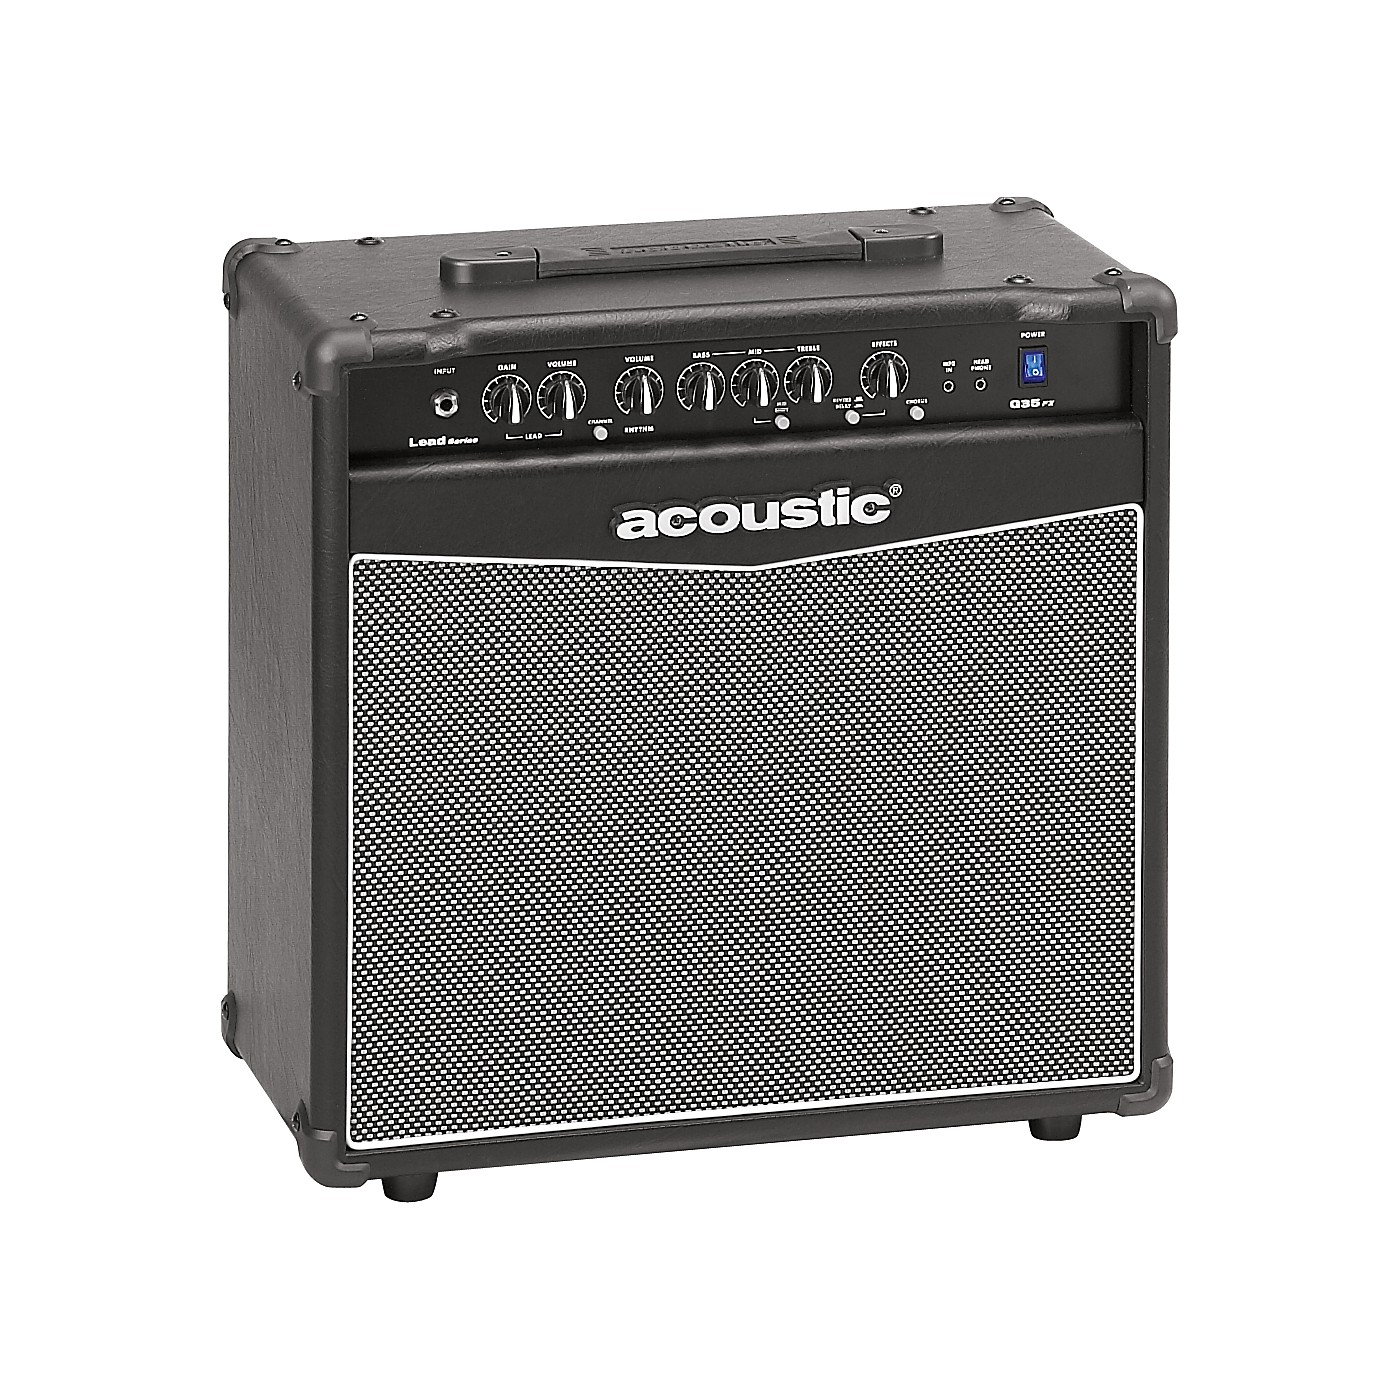 Acoustic Lead Guitar Series G35FX 35W 1x12 Guitar Combo Amp thumbnail